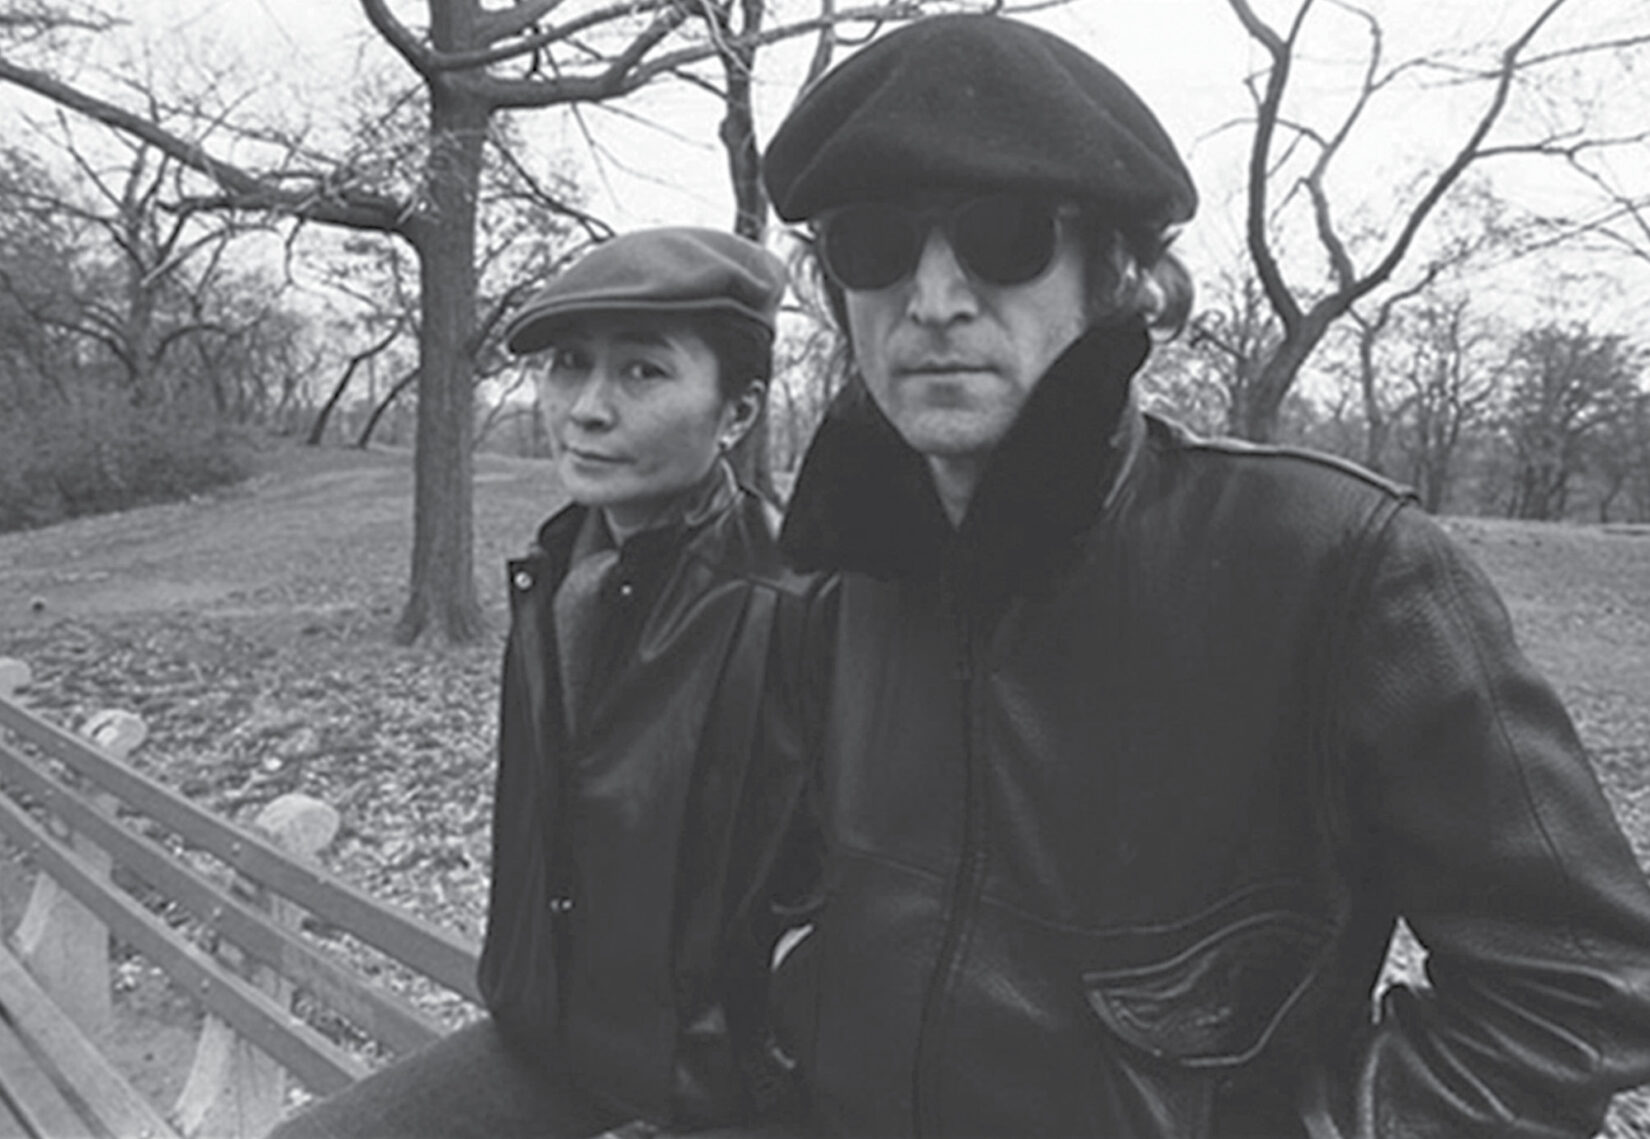 The couple are both wearing berets, sitting atop a park bench with leafless winter trees in the background.